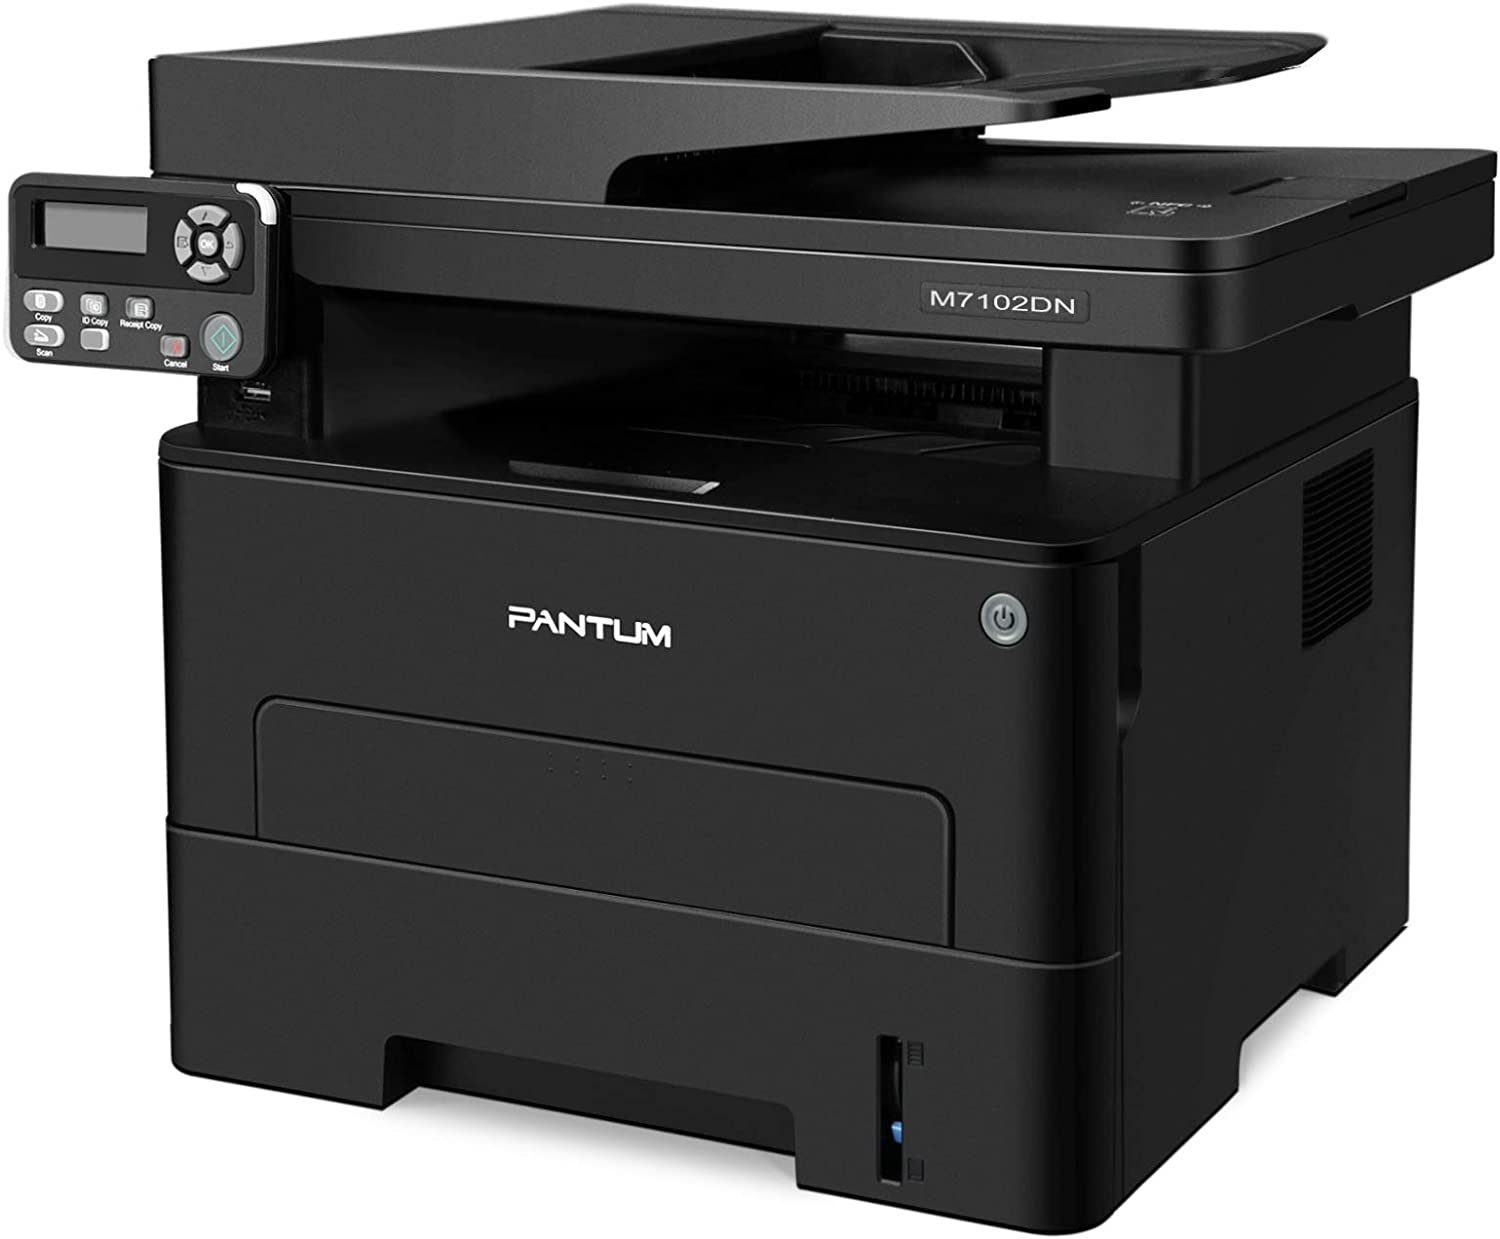 All in One Laser Printer Scanner Copier, Multifunction Black and White Monochrome Printer with ADF, Auto Two Sided Printing, Built-in Ethernet, Connect with Network and USB Code Only, Pantum M7102DN